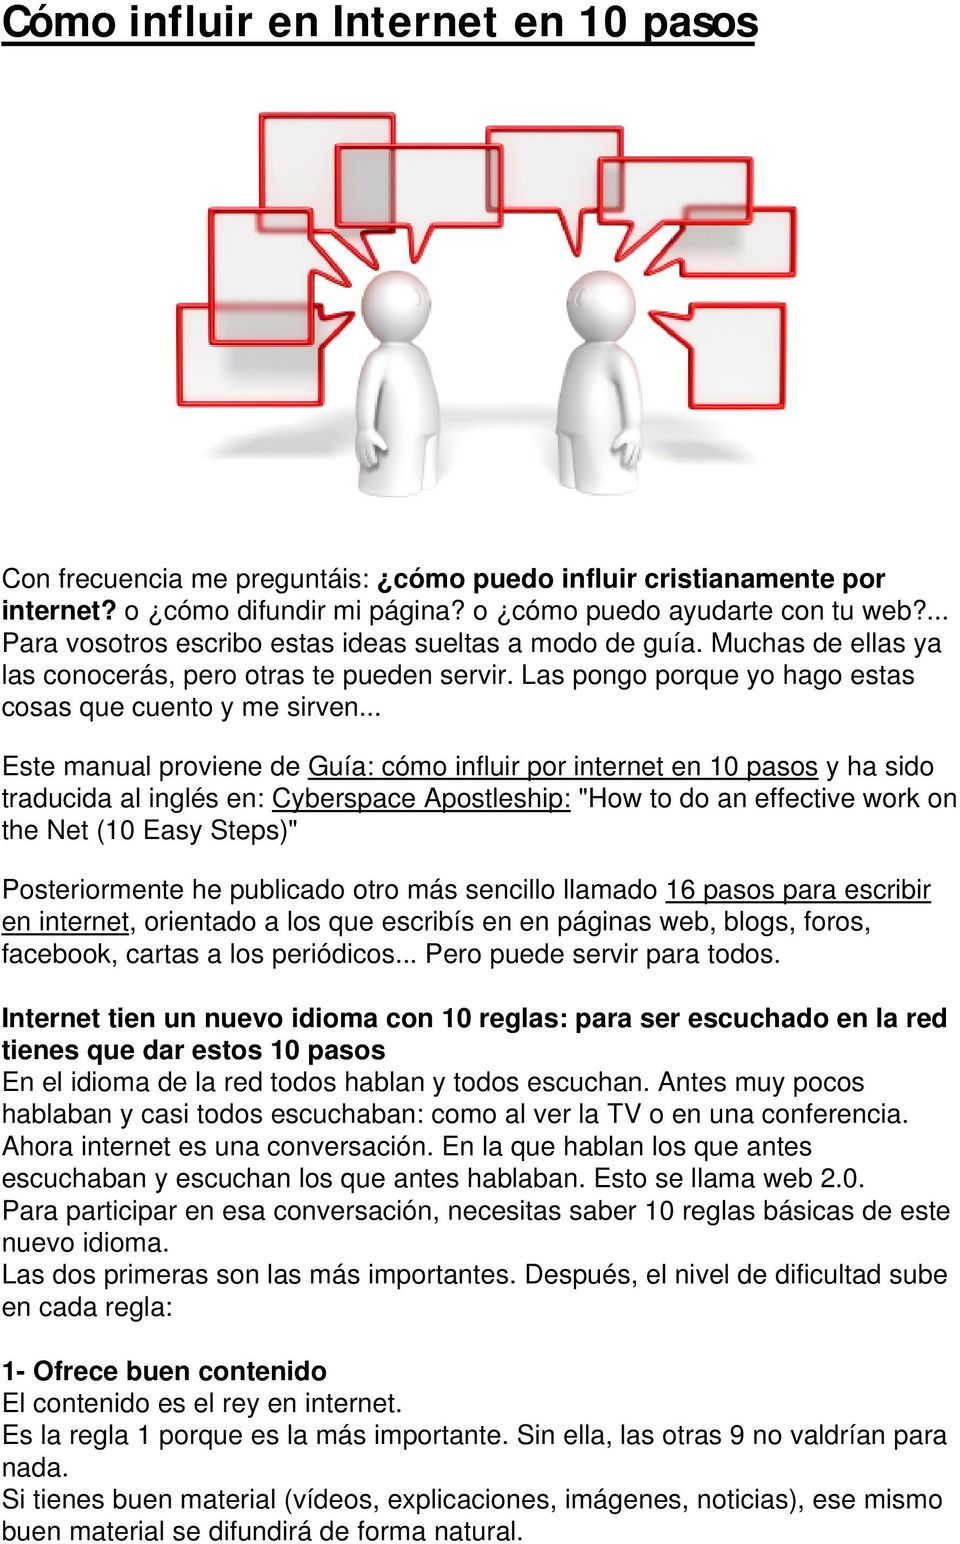 ".. Este manual proviene de Guía: cómo influir por internet en 10 pasos y ha sido traducida al inglés en: Cyberspace Apostleship: ""How to do an effective work on the Net (10 Easy Steps)"""